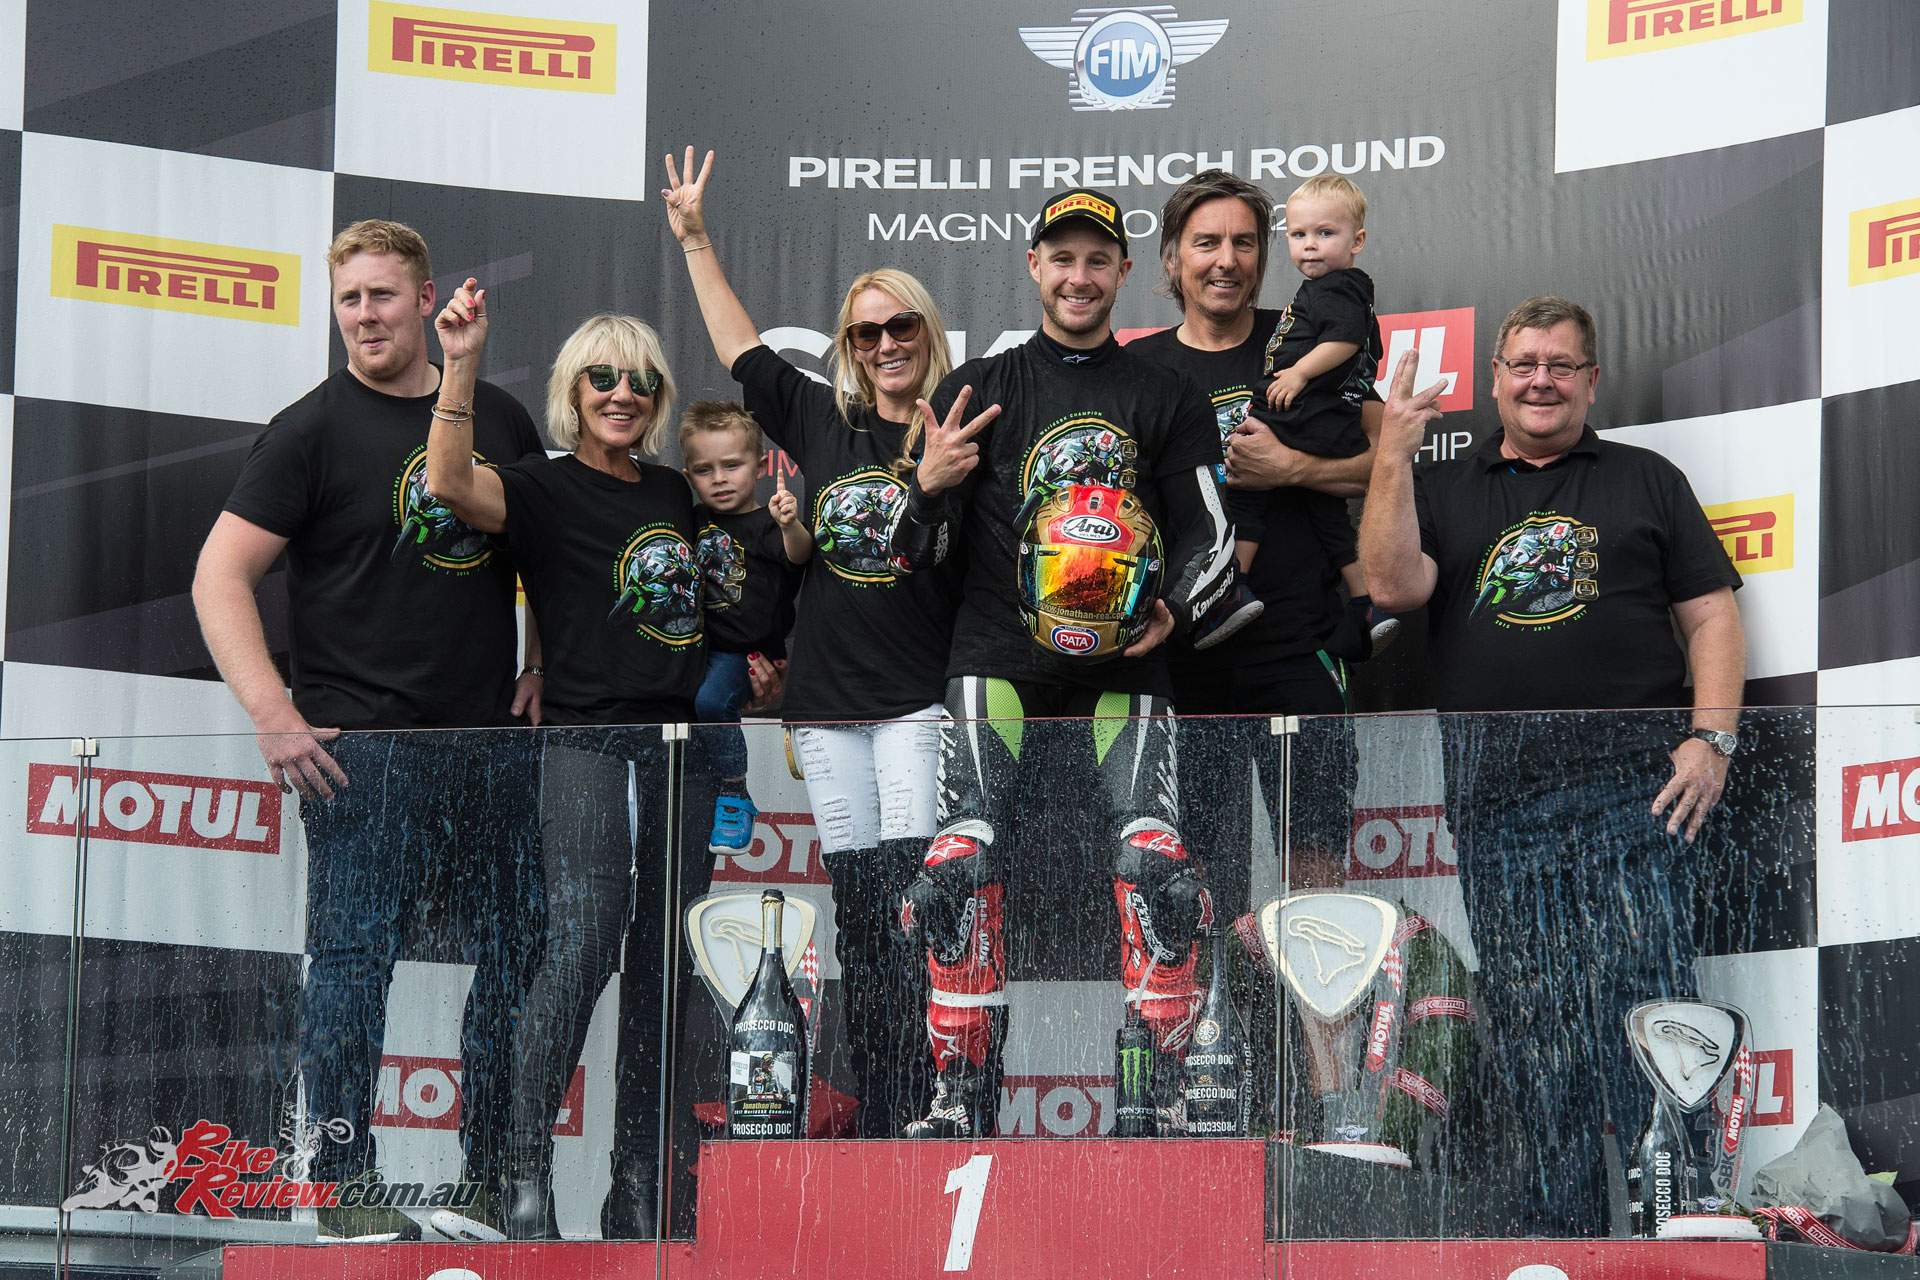 Jonathan Rea wins his third consecutive WSBK title - Image: BeeGee Images